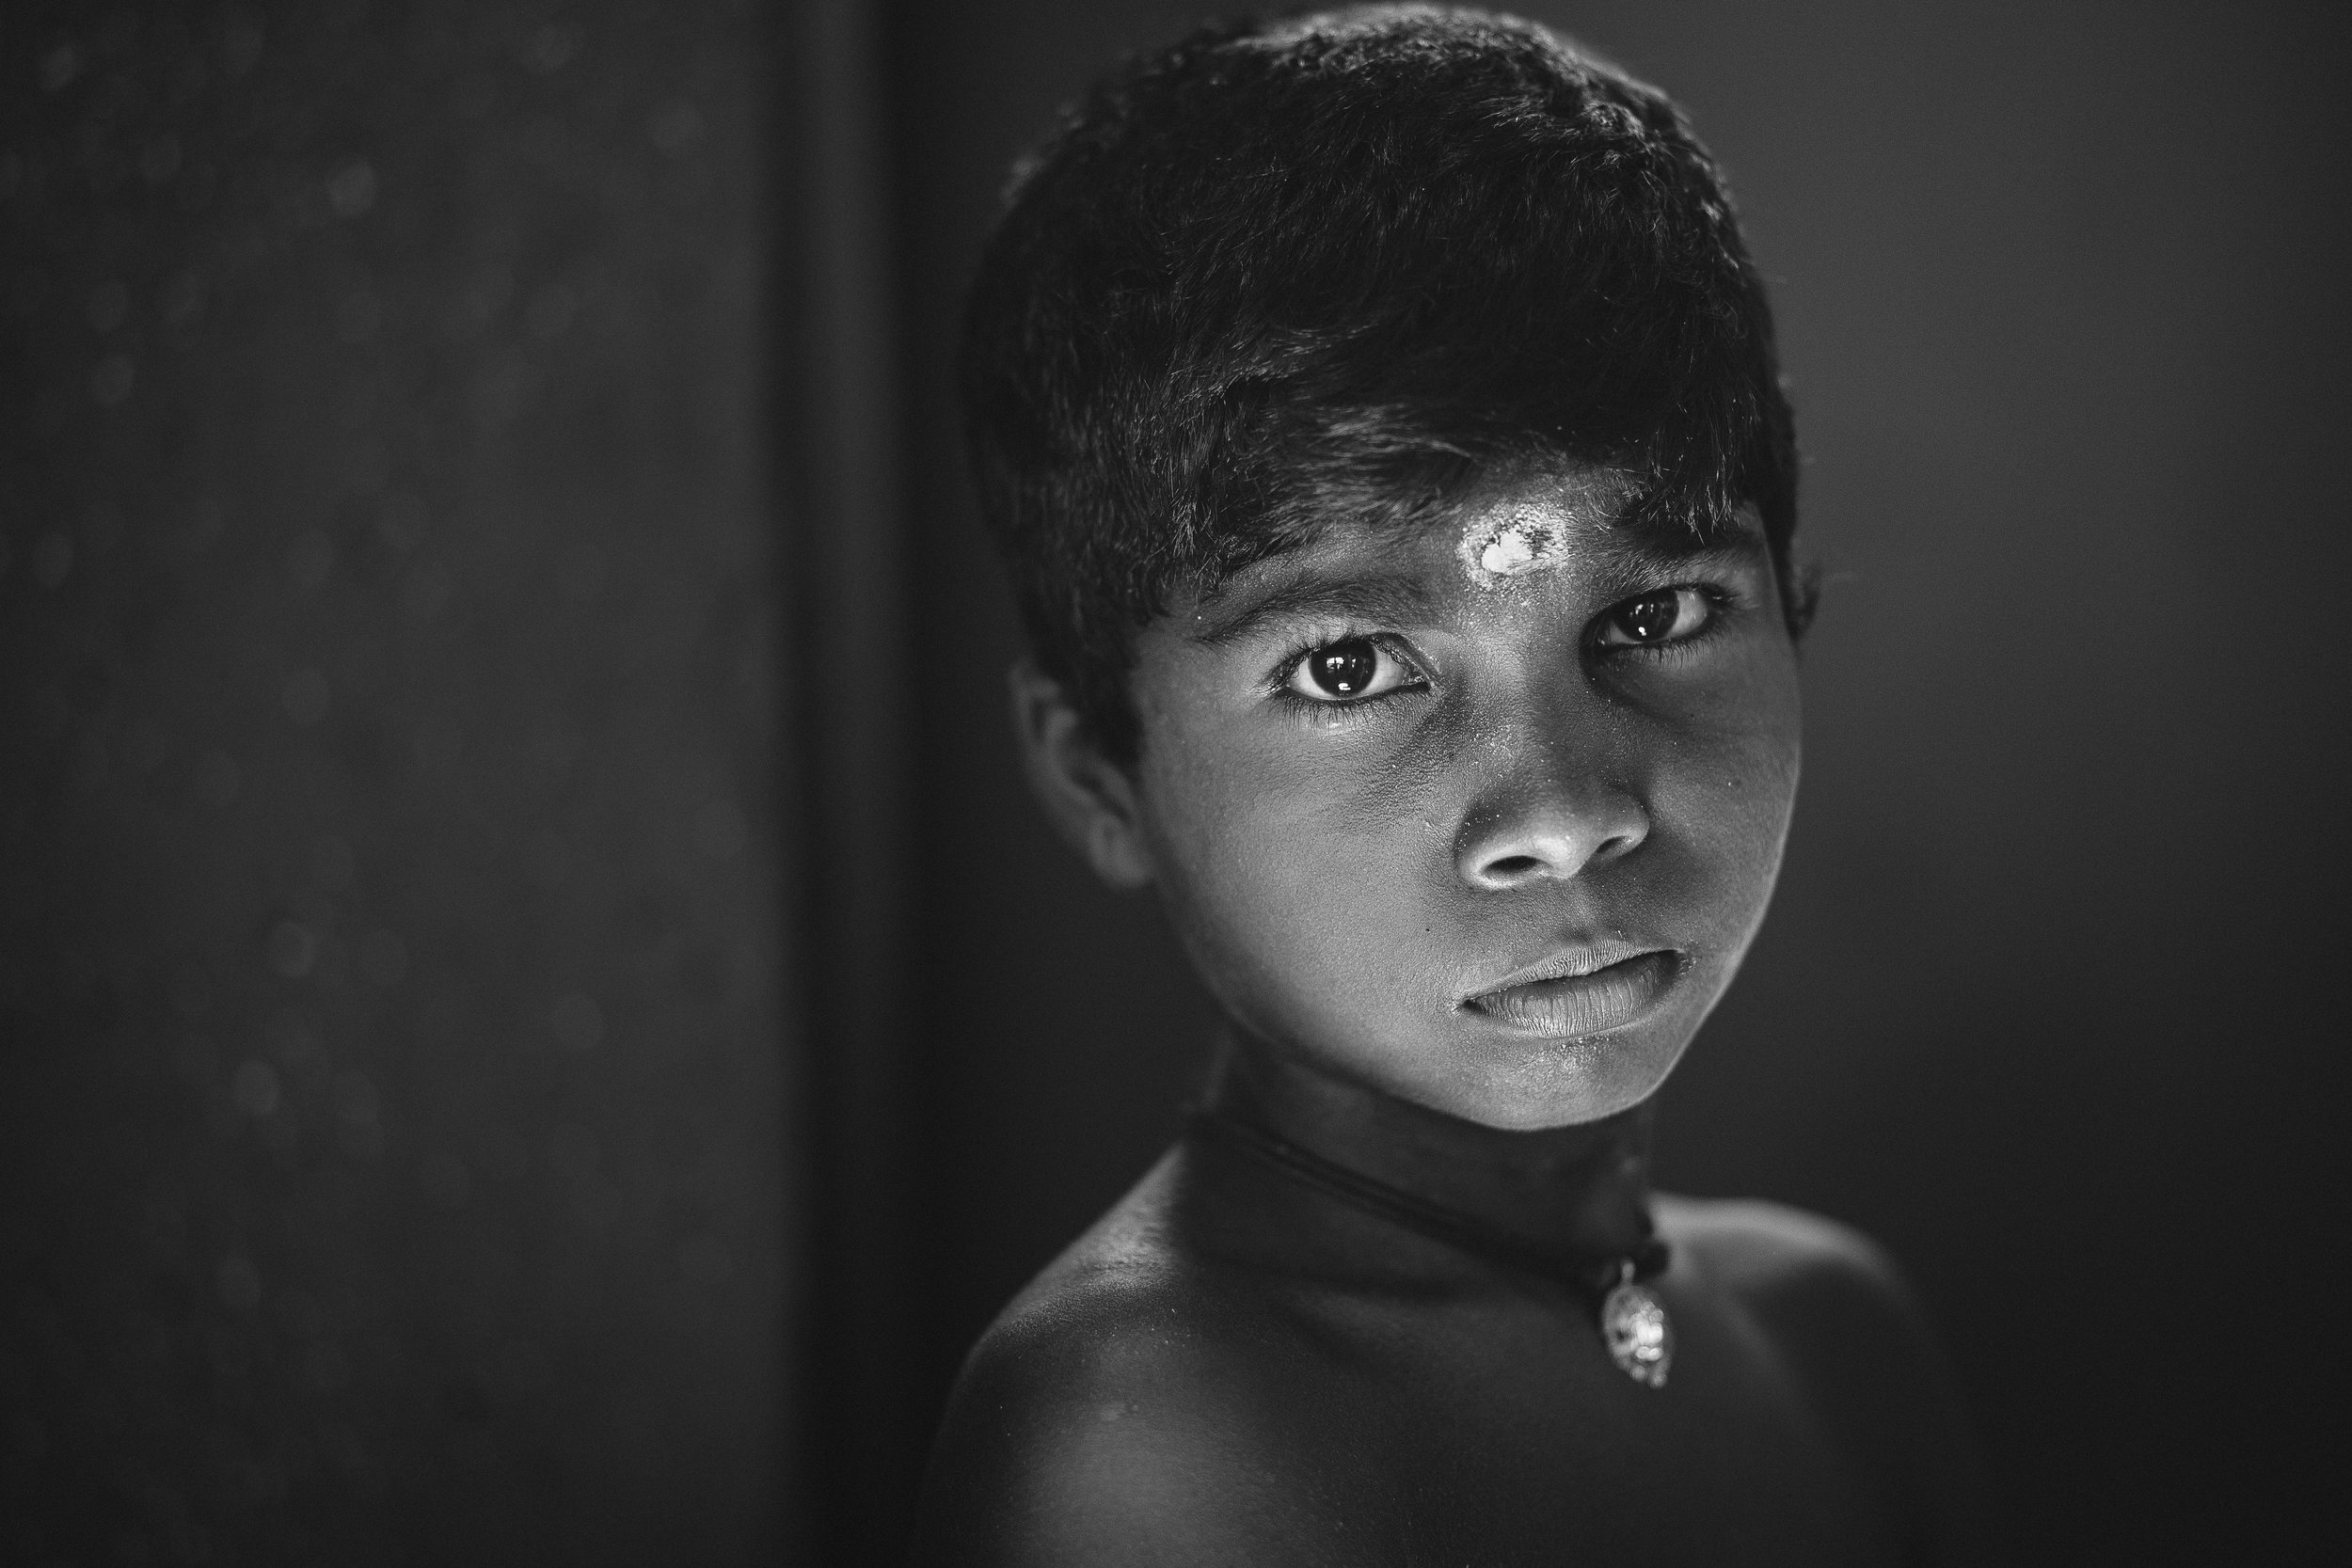 Black and white portrait of a young boy in Jaffna - Sri Lanka